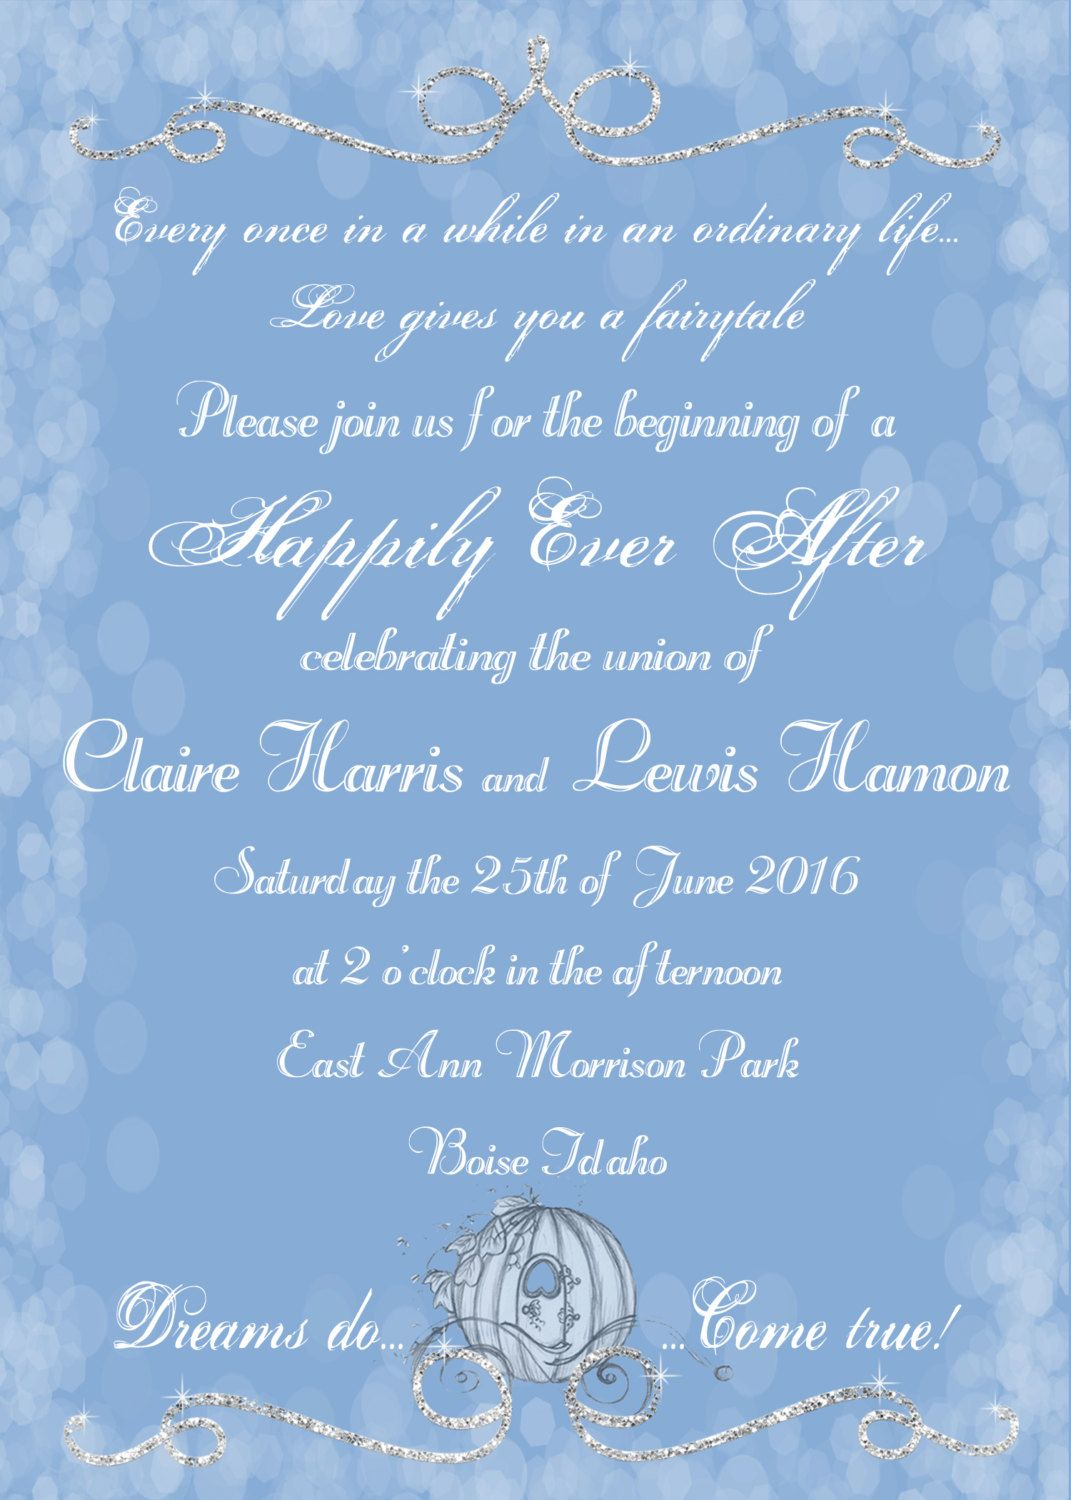 Cinderella Wedding Invitation, Fairytale Wedding Invitation ...